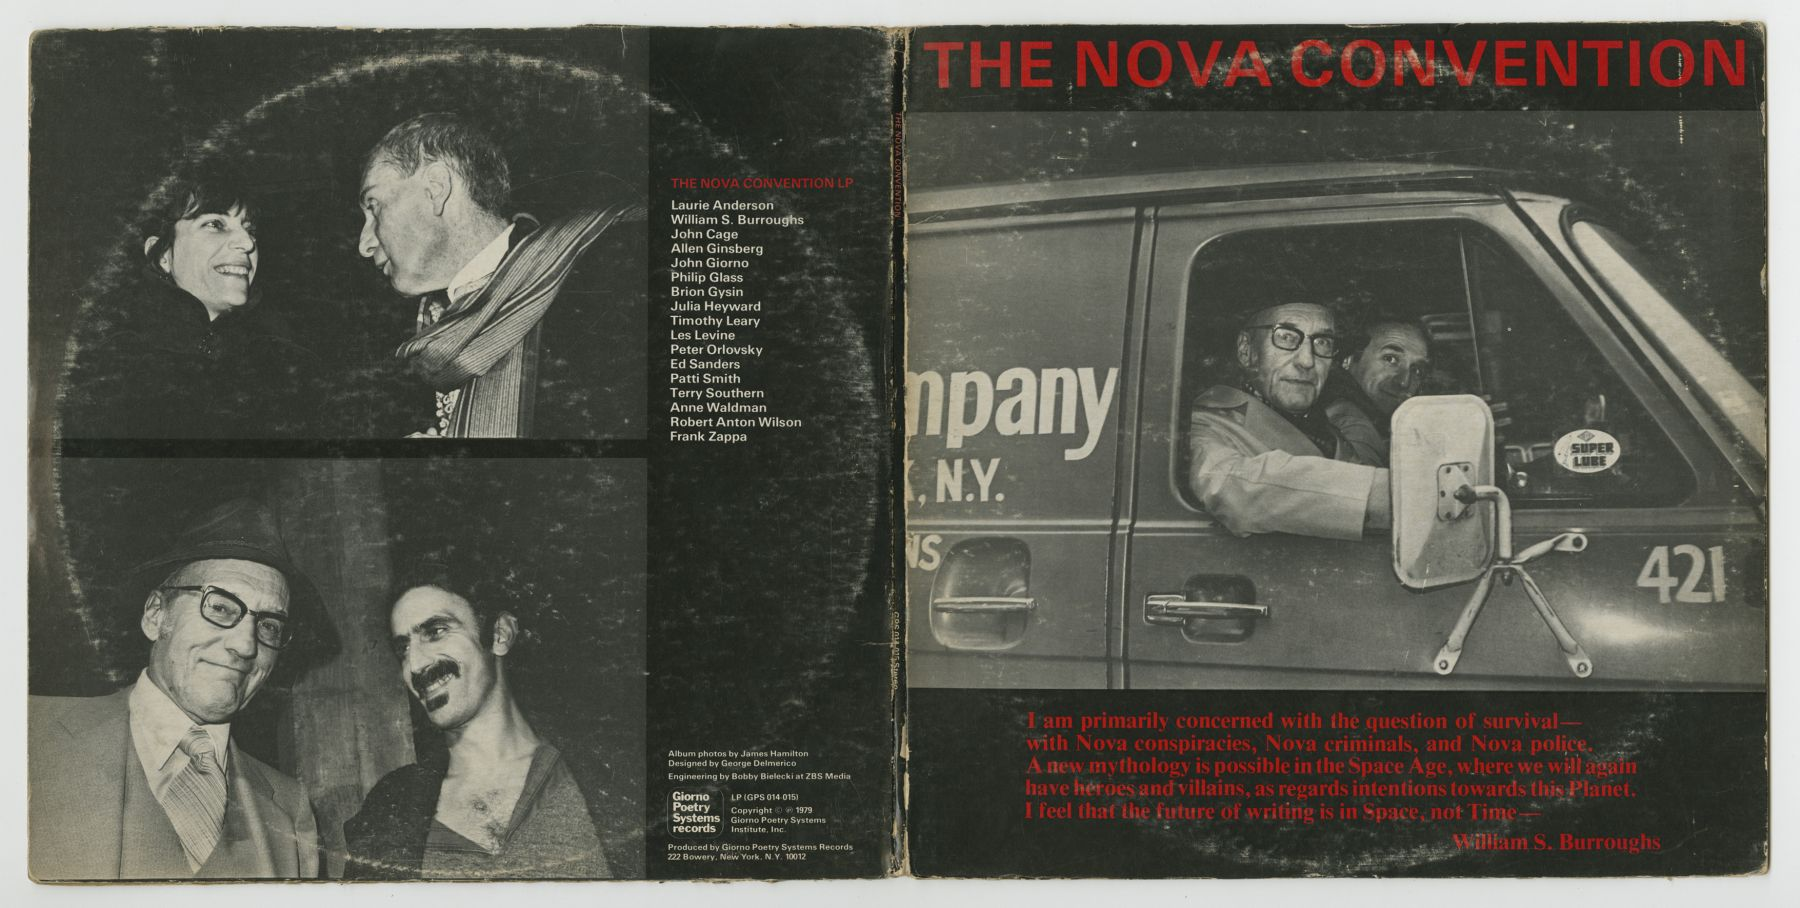 The Nova Convention (1979), front and back covers